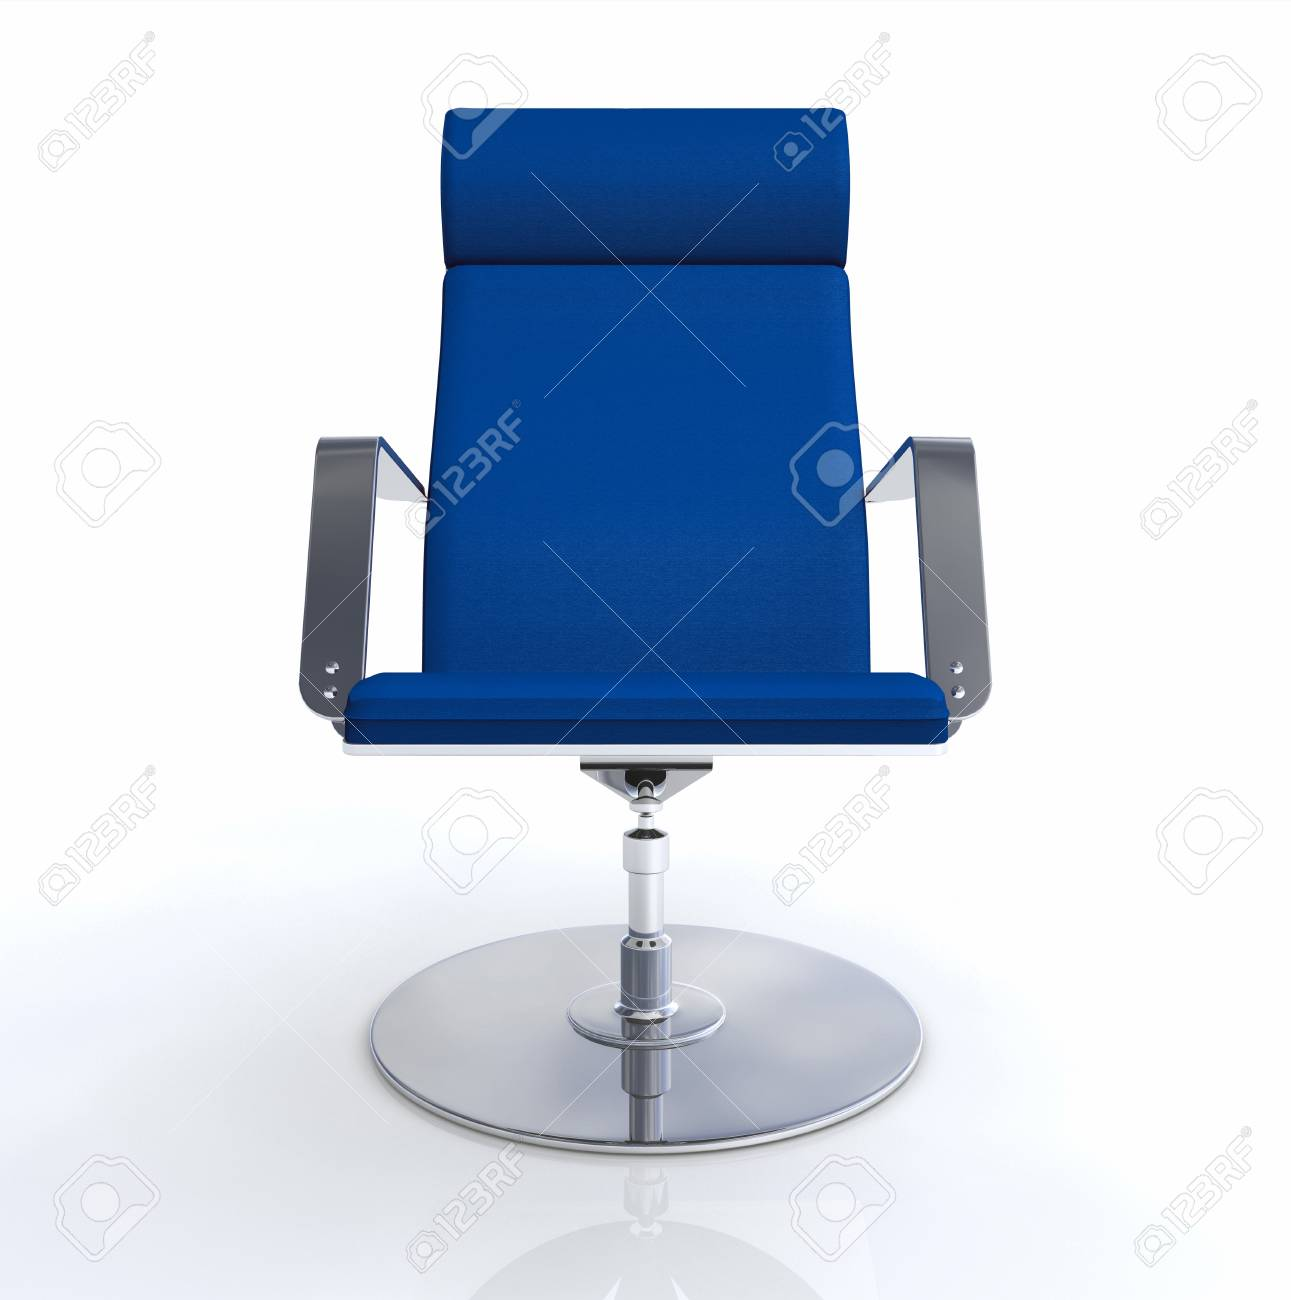 Excutif Chaise Design Bleu Argent Banque DImages Et Photos Libres